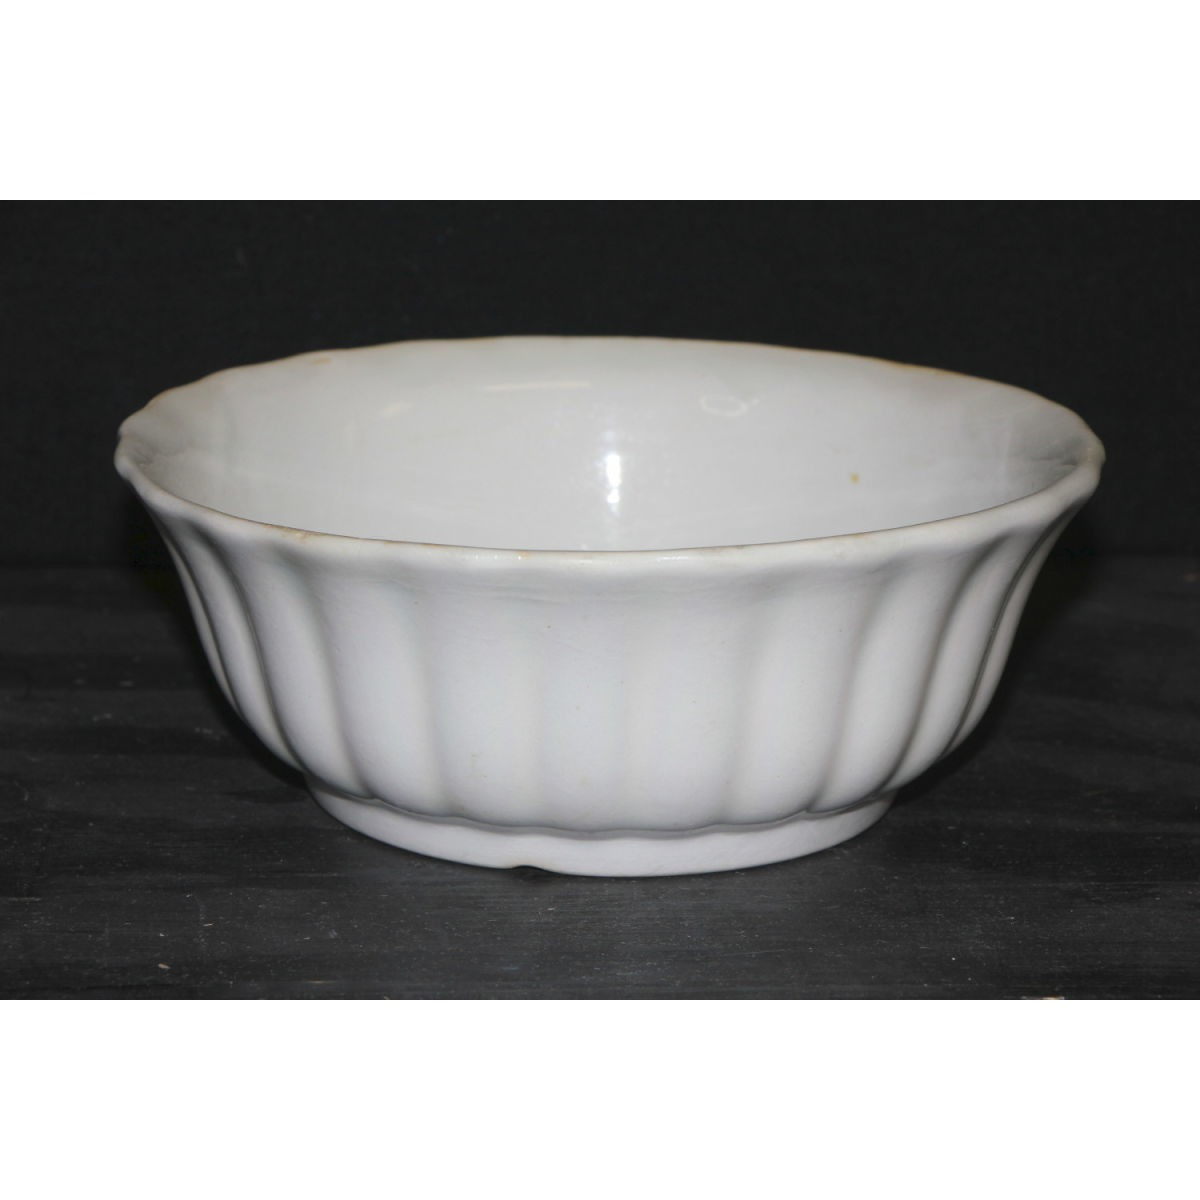 "Small Fluted Ironstone Serving Bowl - 7.5"" diameter"